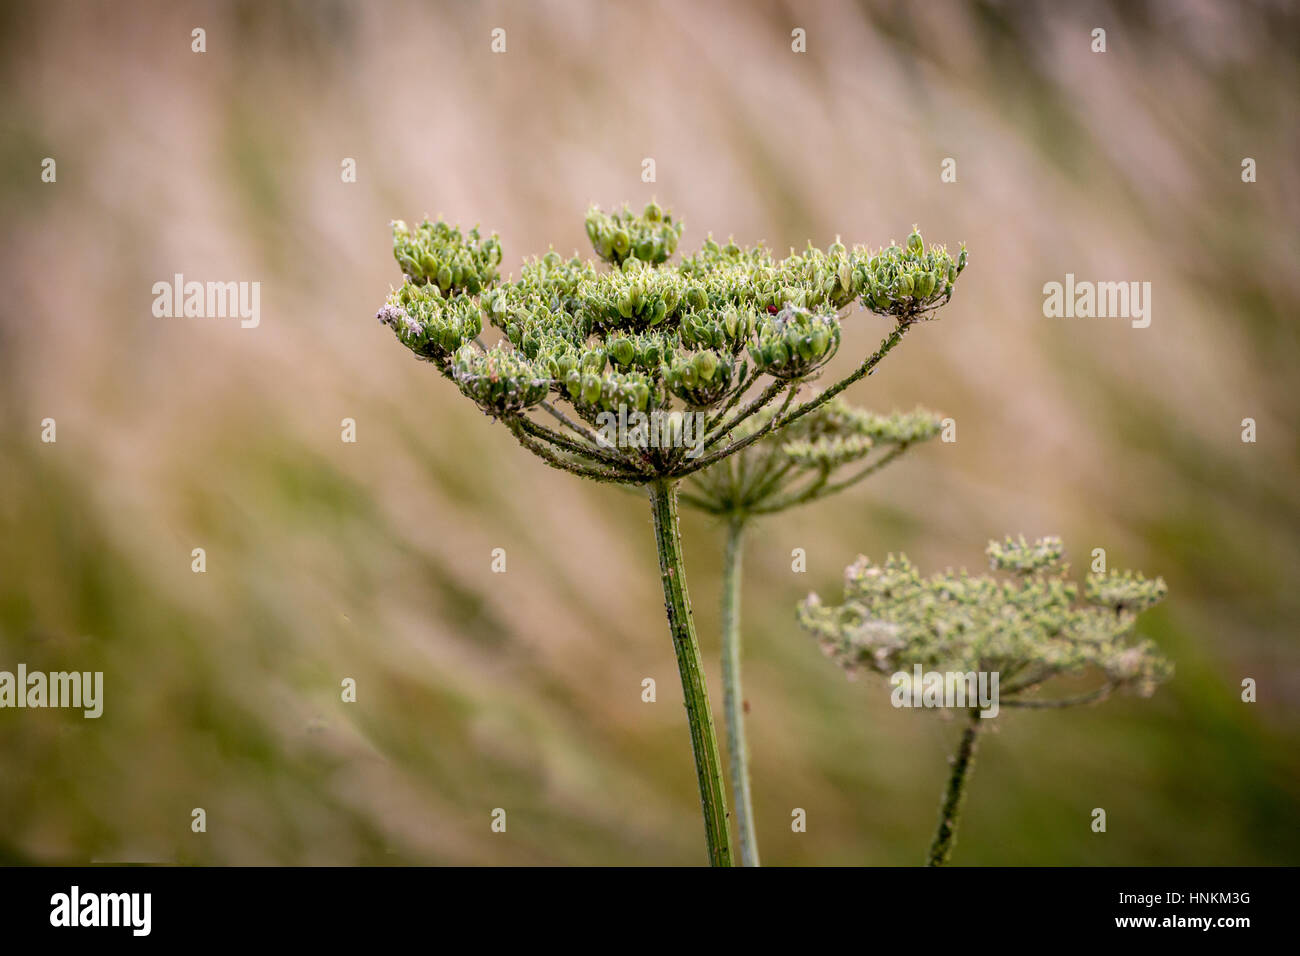 Wild flower, shows a close up of an elderflower blossom with a blurred background. - Stock Image